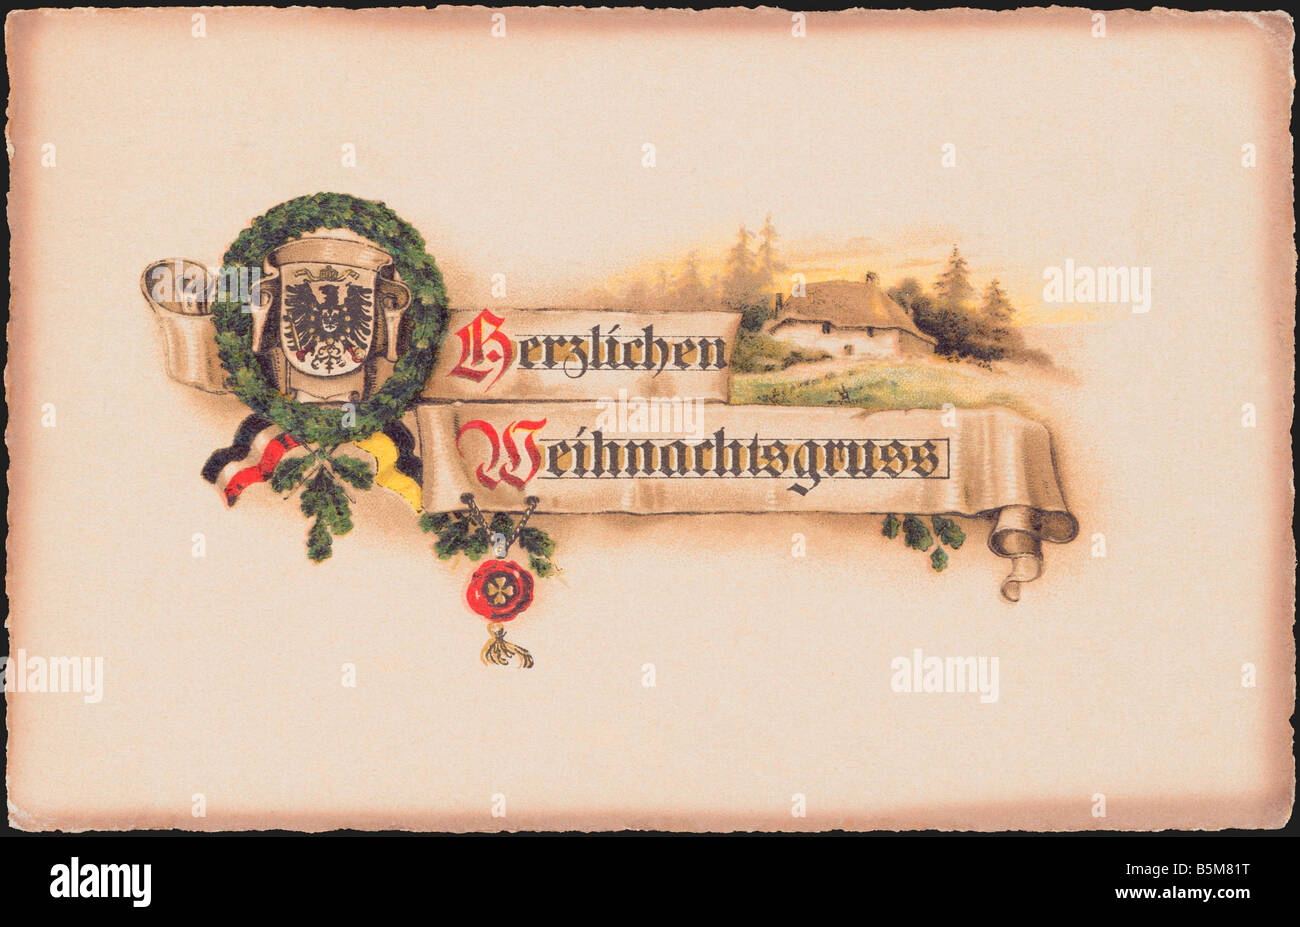 2 F15 P1 1916 1 Banner with Oak Wreath Postcard Christmas Postcards Herzlichen Weihnachtsgruss Baner with oak wreath - Stock Image